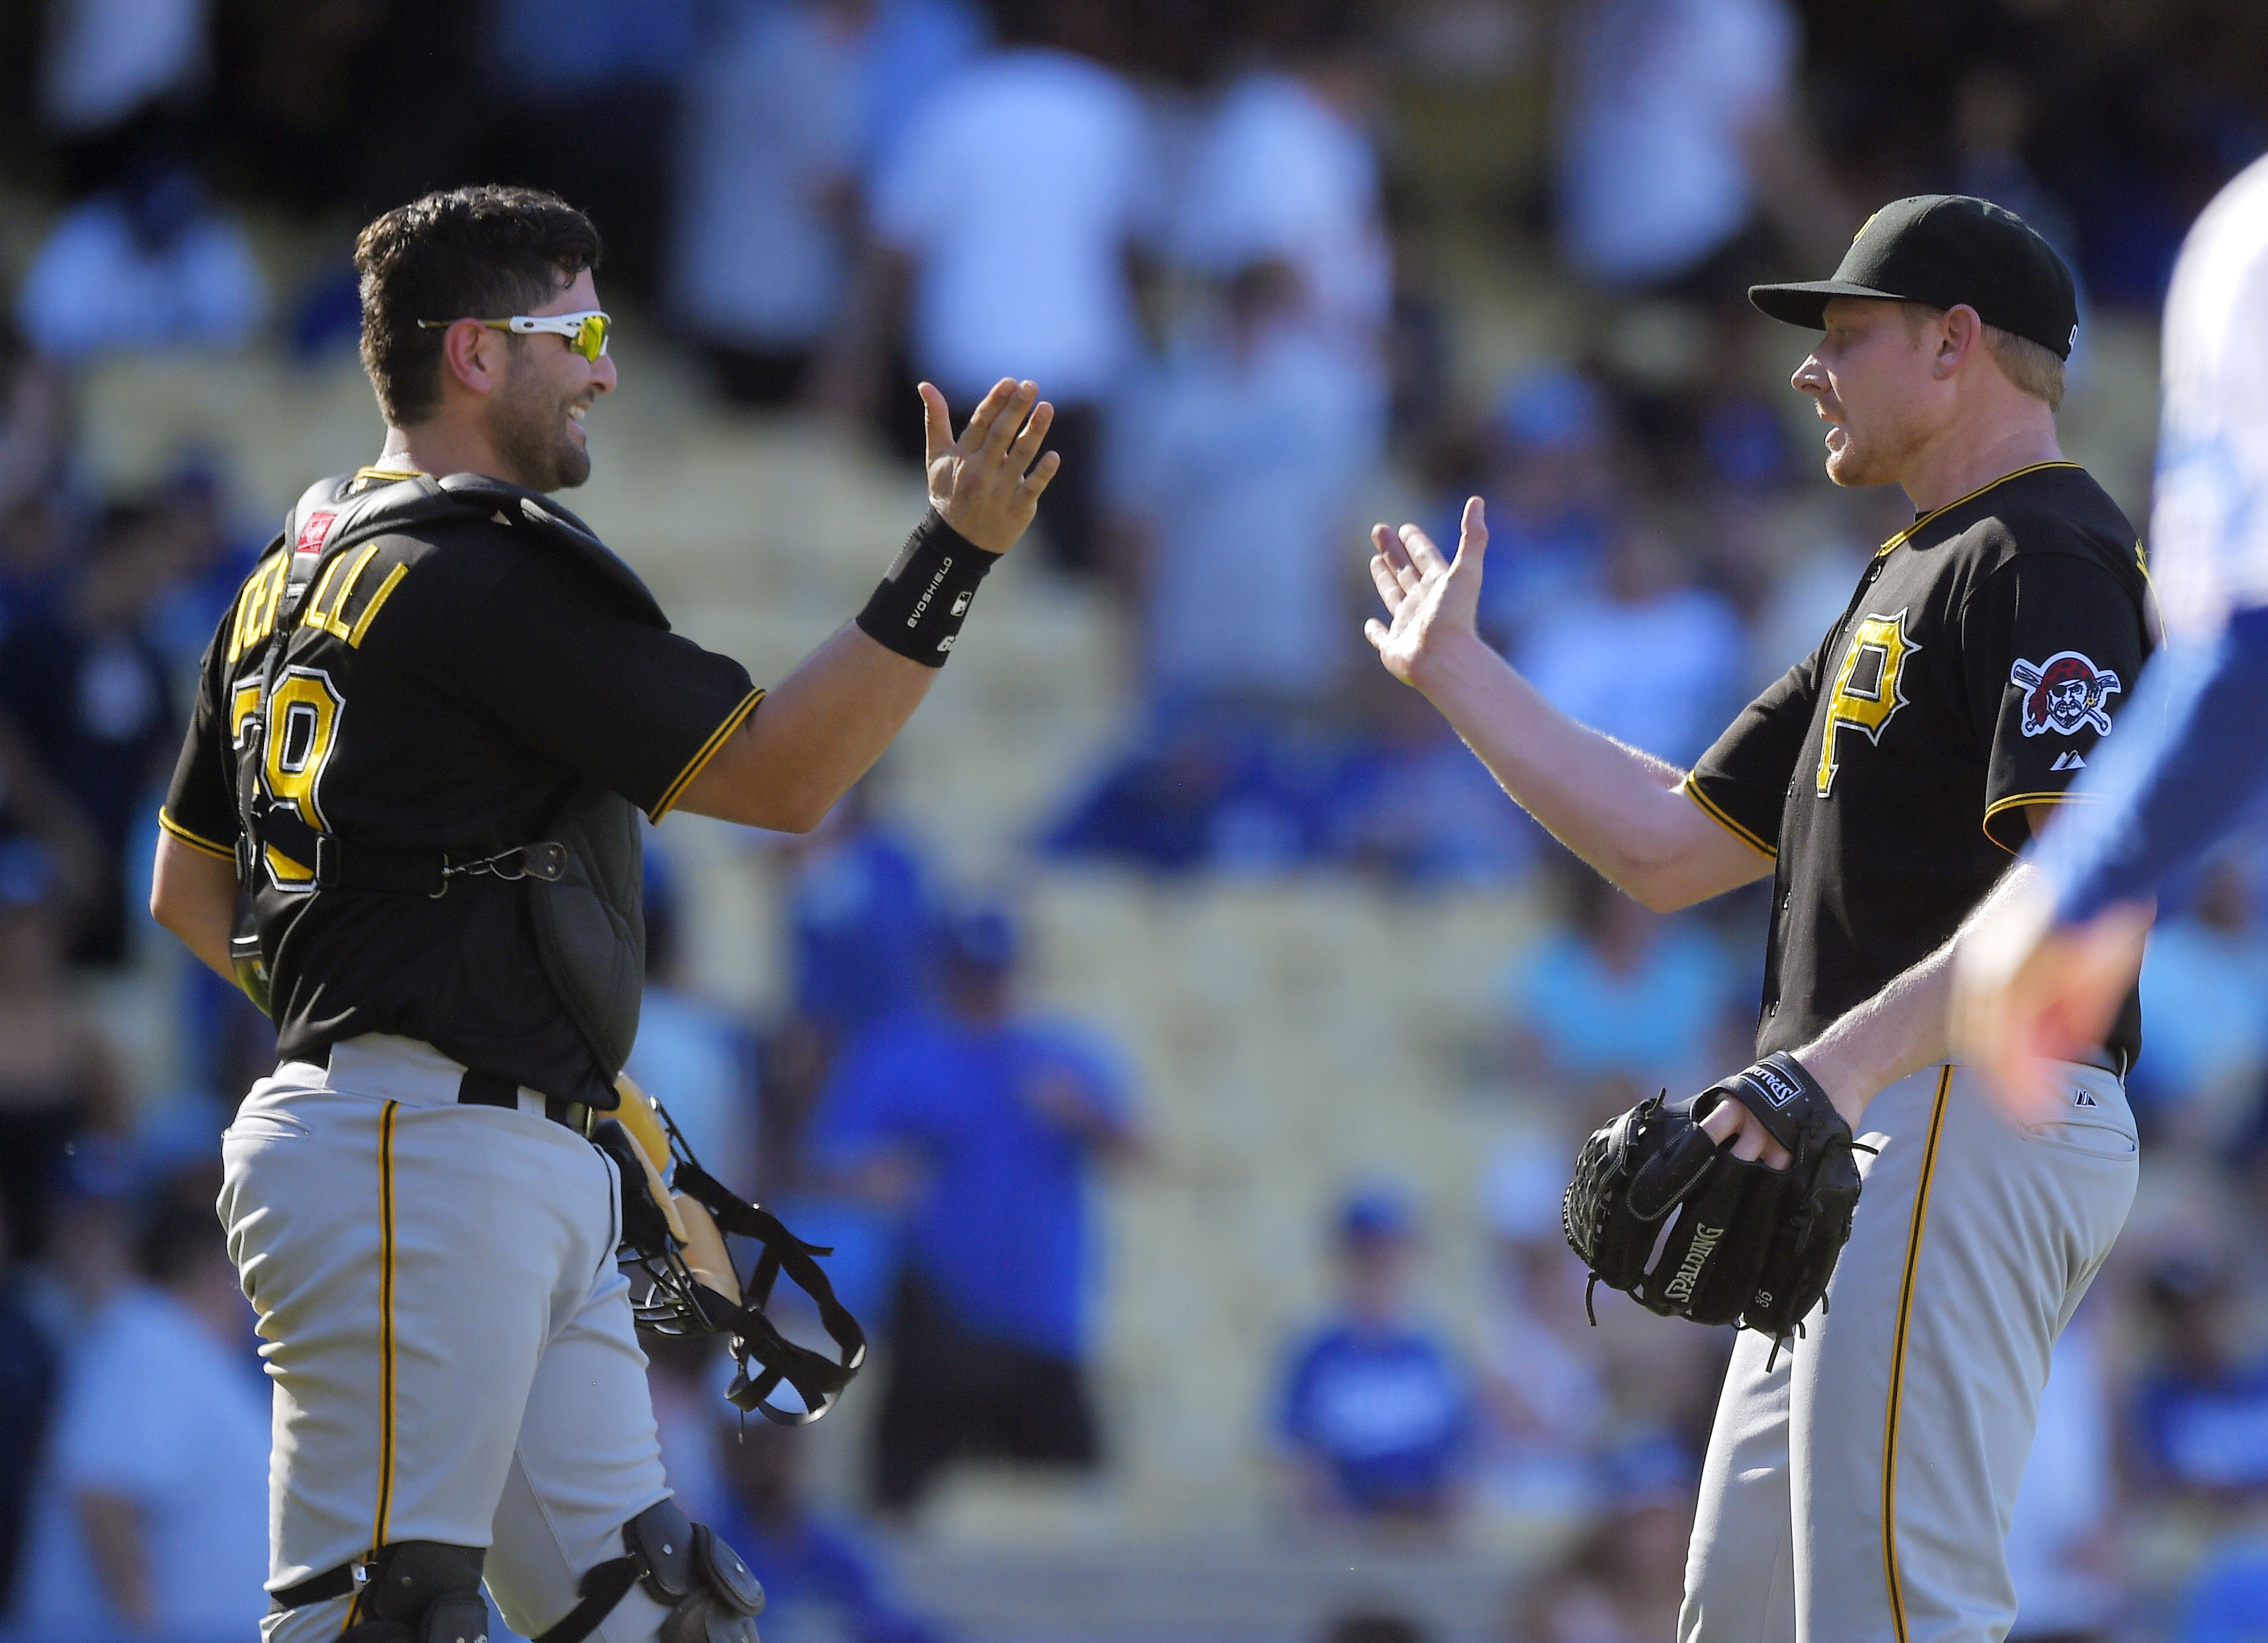 Pittsburgh Pirates relief pitcher Mark Melancon, right, and catcher Francisco Cervelli congratulate each other as the Pirates defeated the Los Angeles Dodgers 4-3 in a baseball game, Sunday, Sept. 20, 2015, in Los Angeles. (AP Photo/Mark J. Terrill)